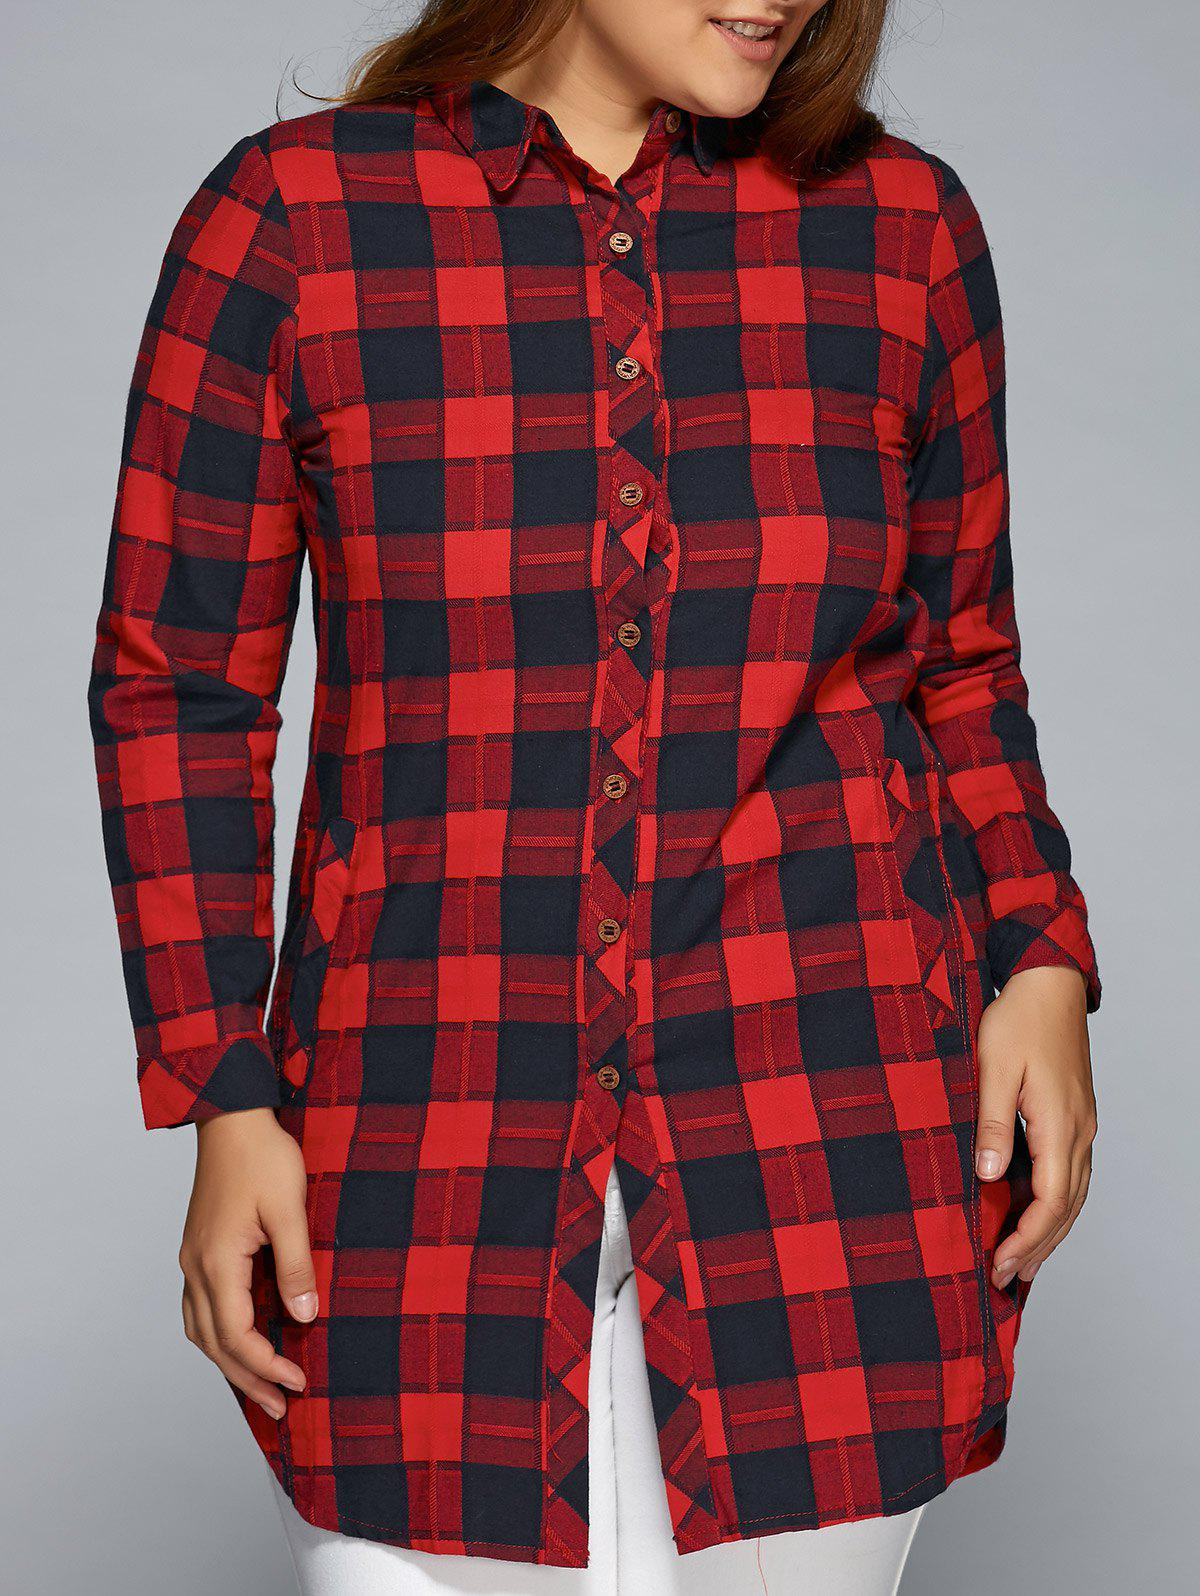 420ffdf93cf Plus Size Red And Black Plaid Shirt - BCD Tofu House